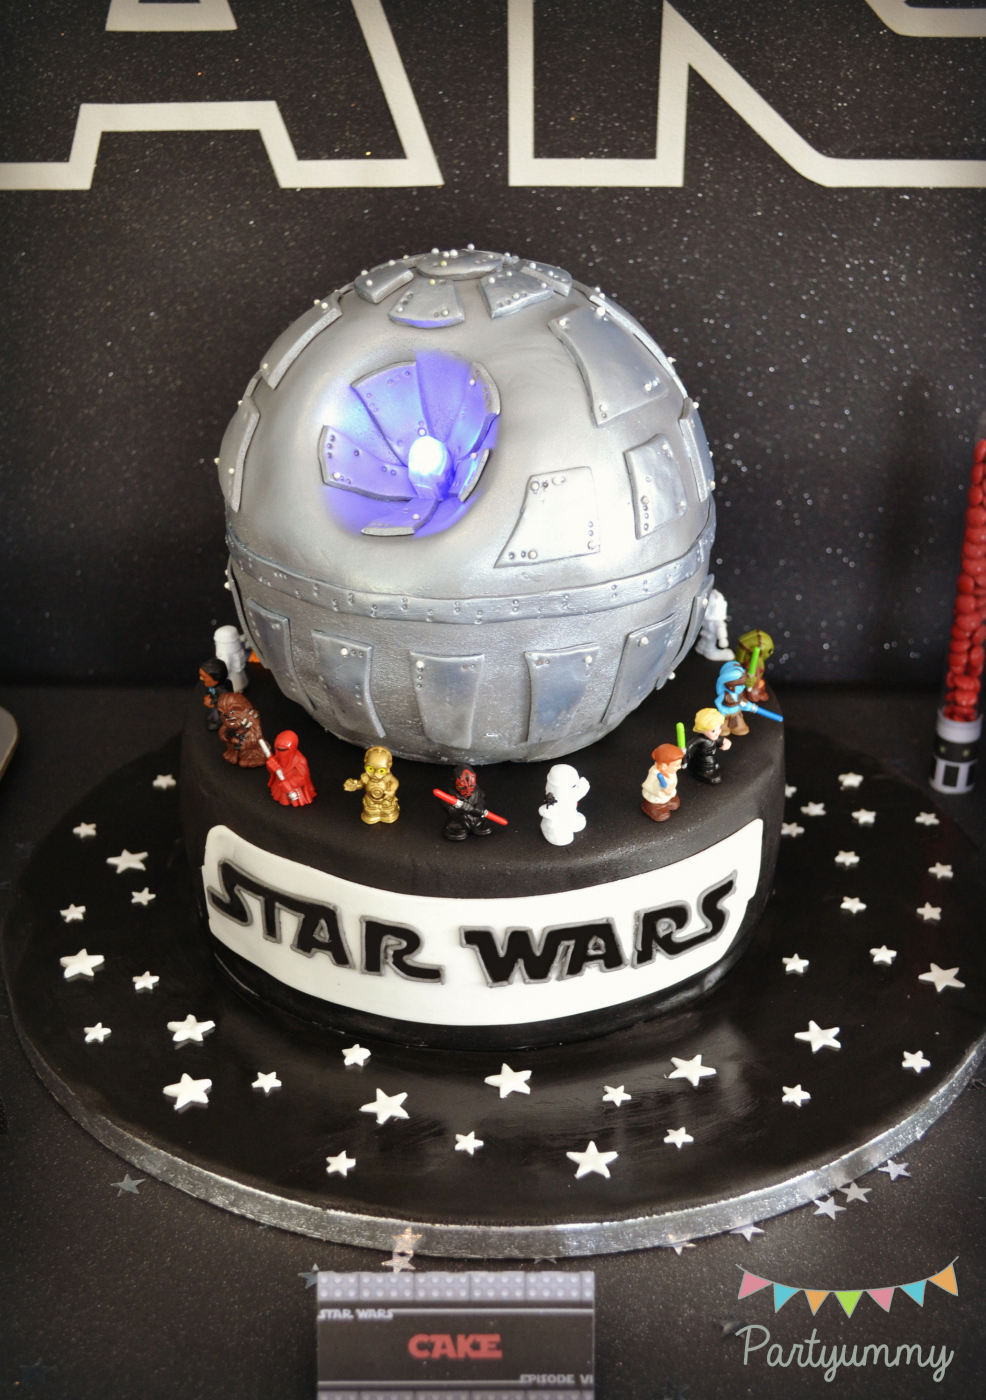 gateau-star-wars-etoile-mort-death-star-cake